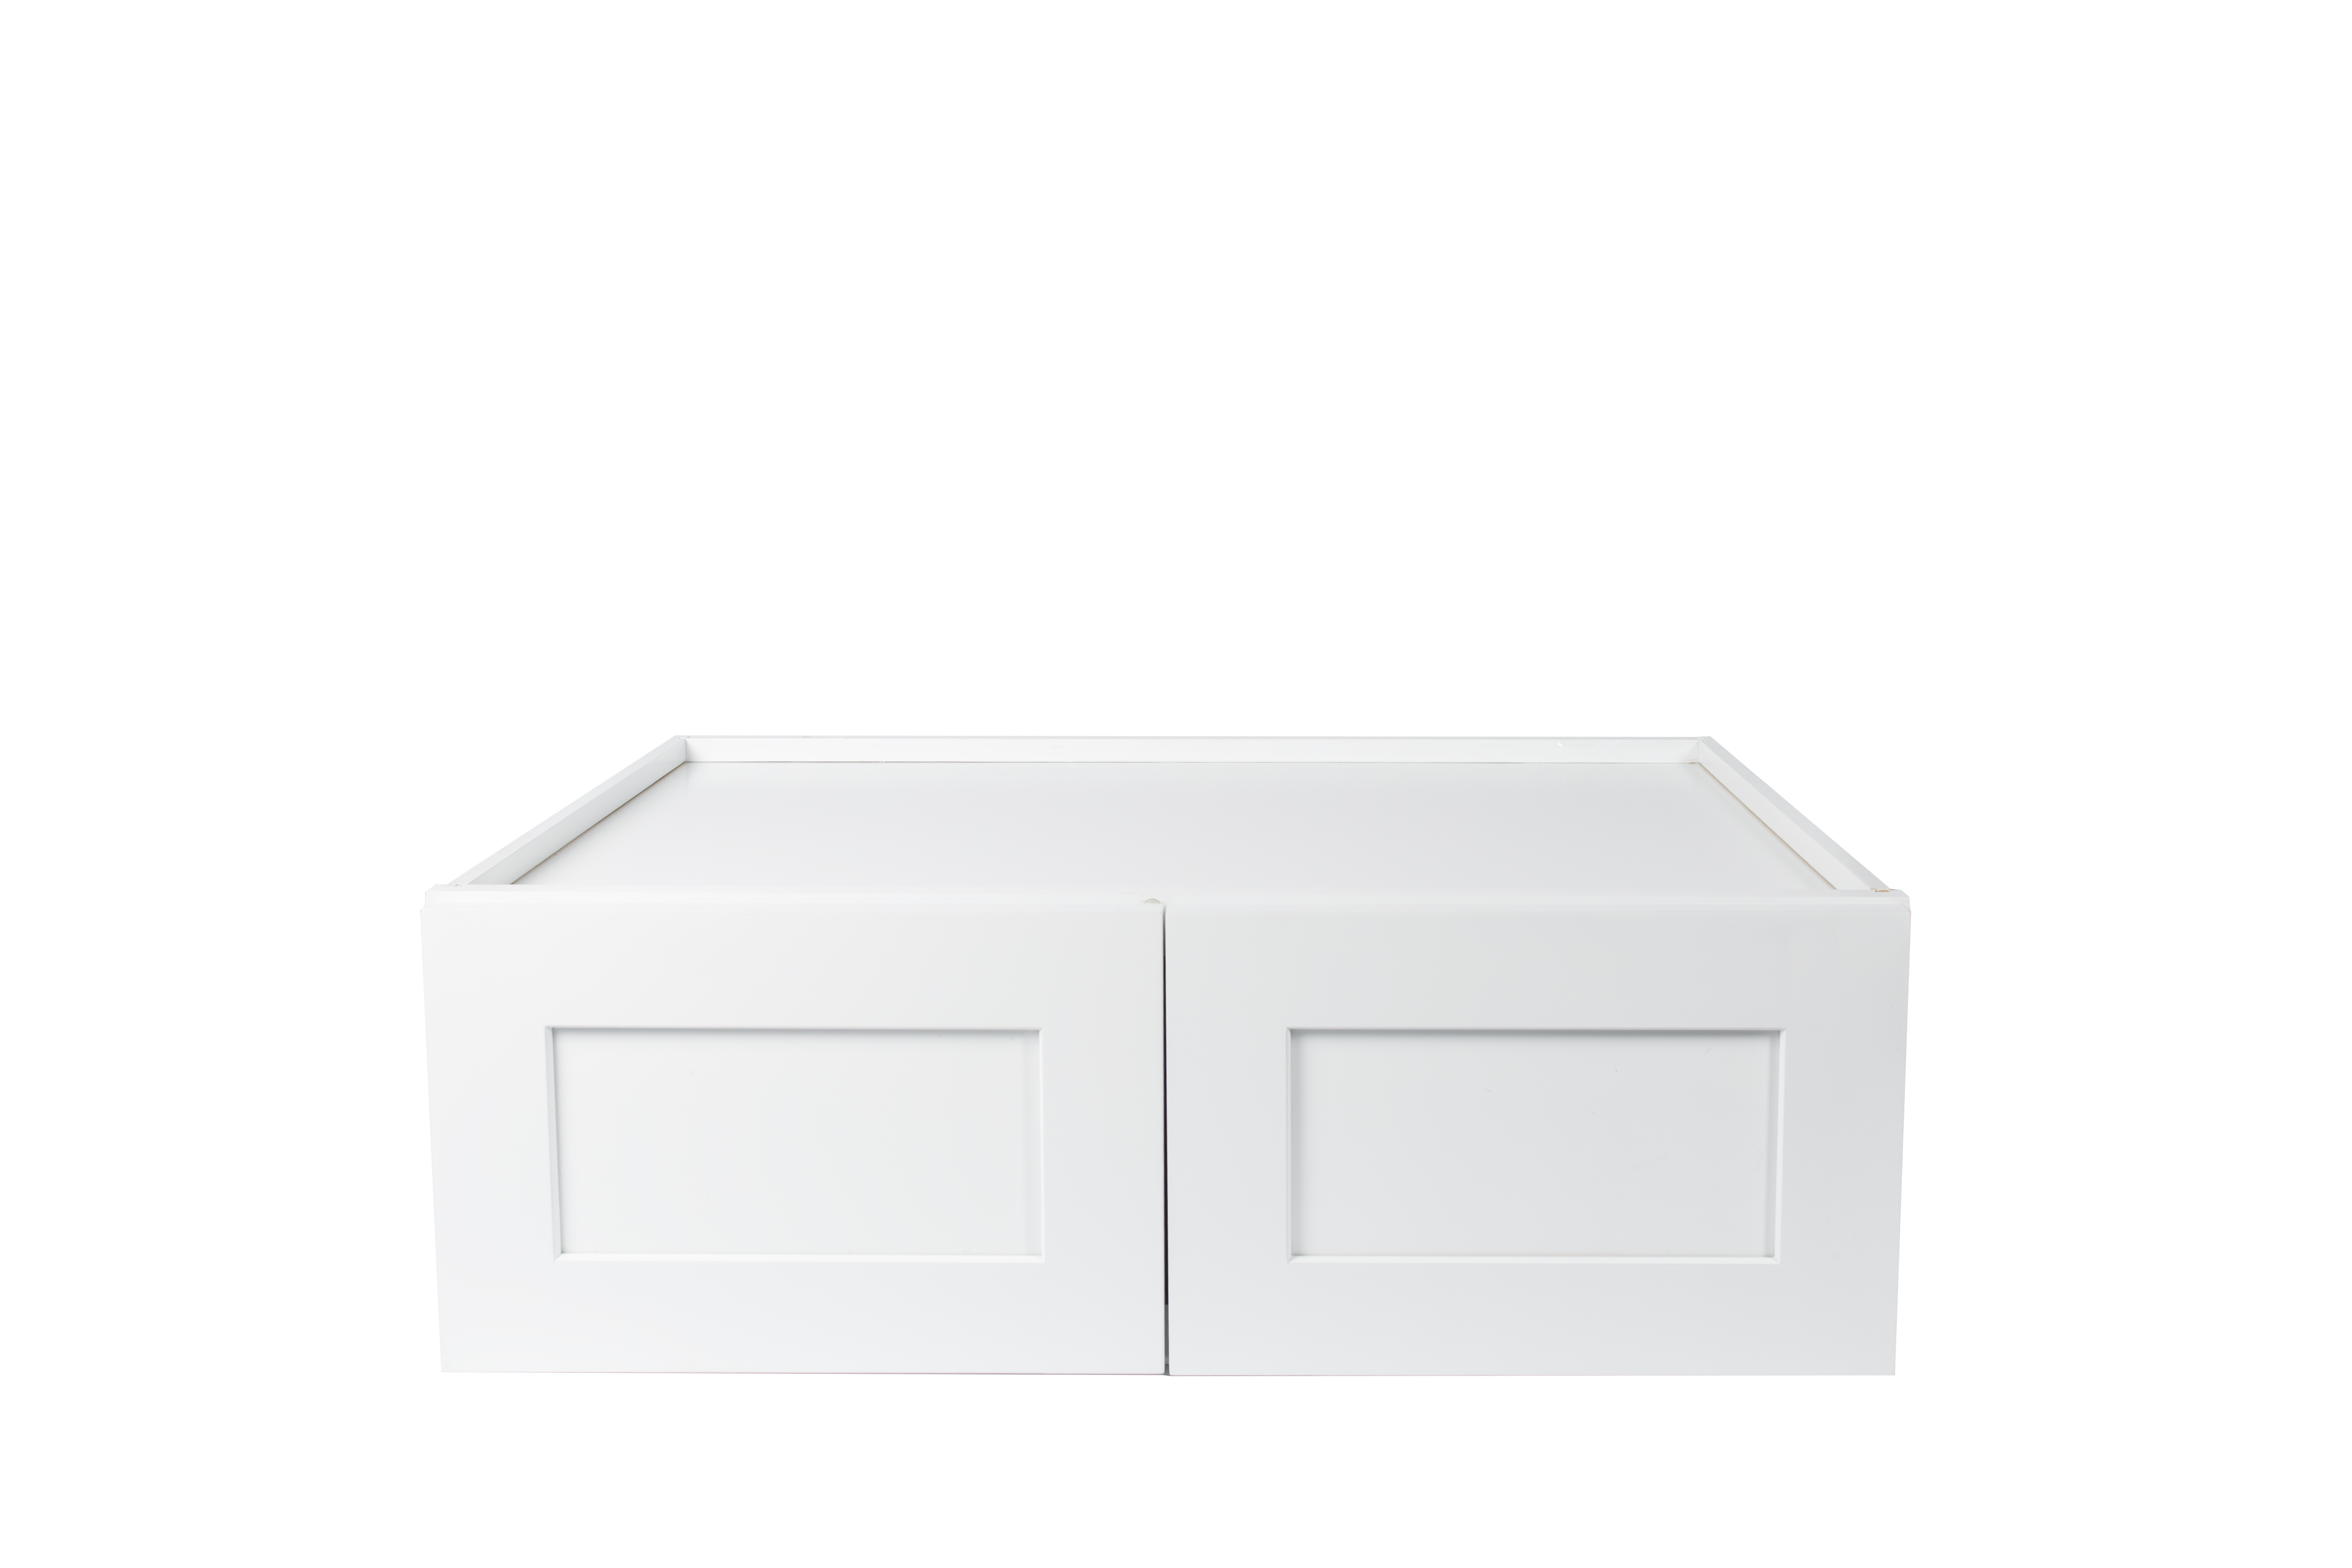 Ready to Assemble 33x12x12 in. Shaker High Double Door Wall Cabinet in White